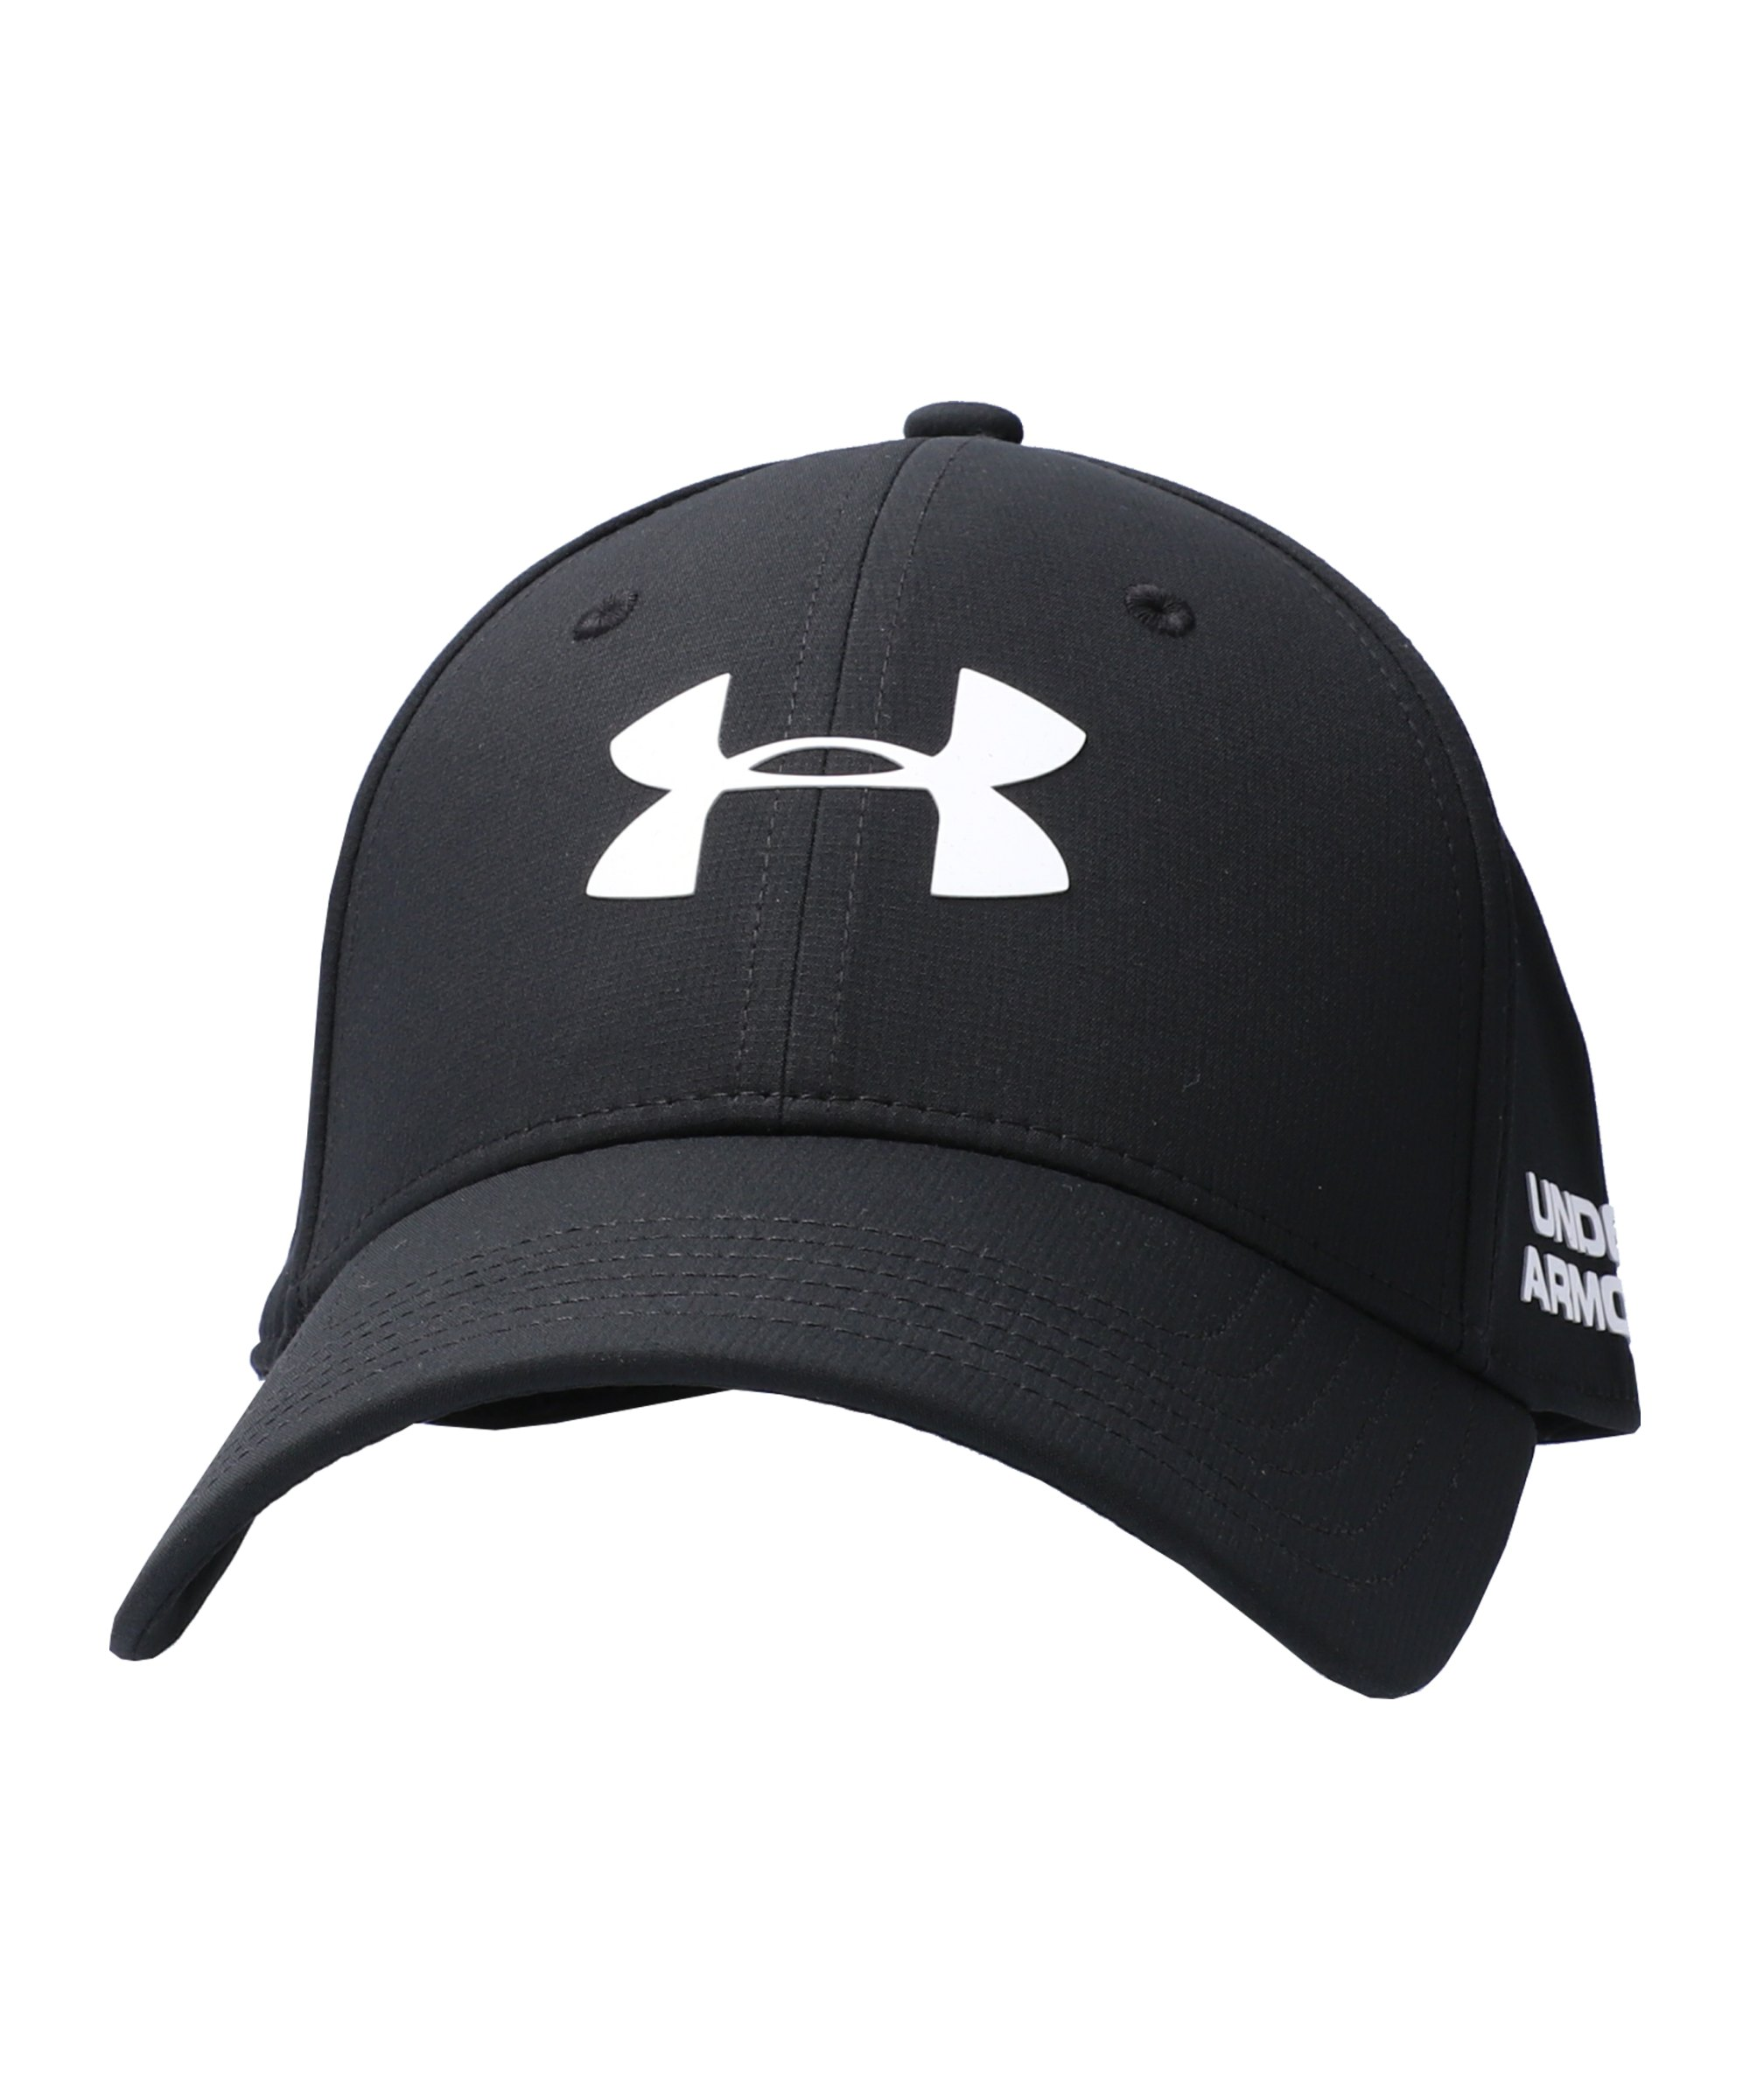 Under Armour Golf Headline 2.0 Cap F002 - schwarz